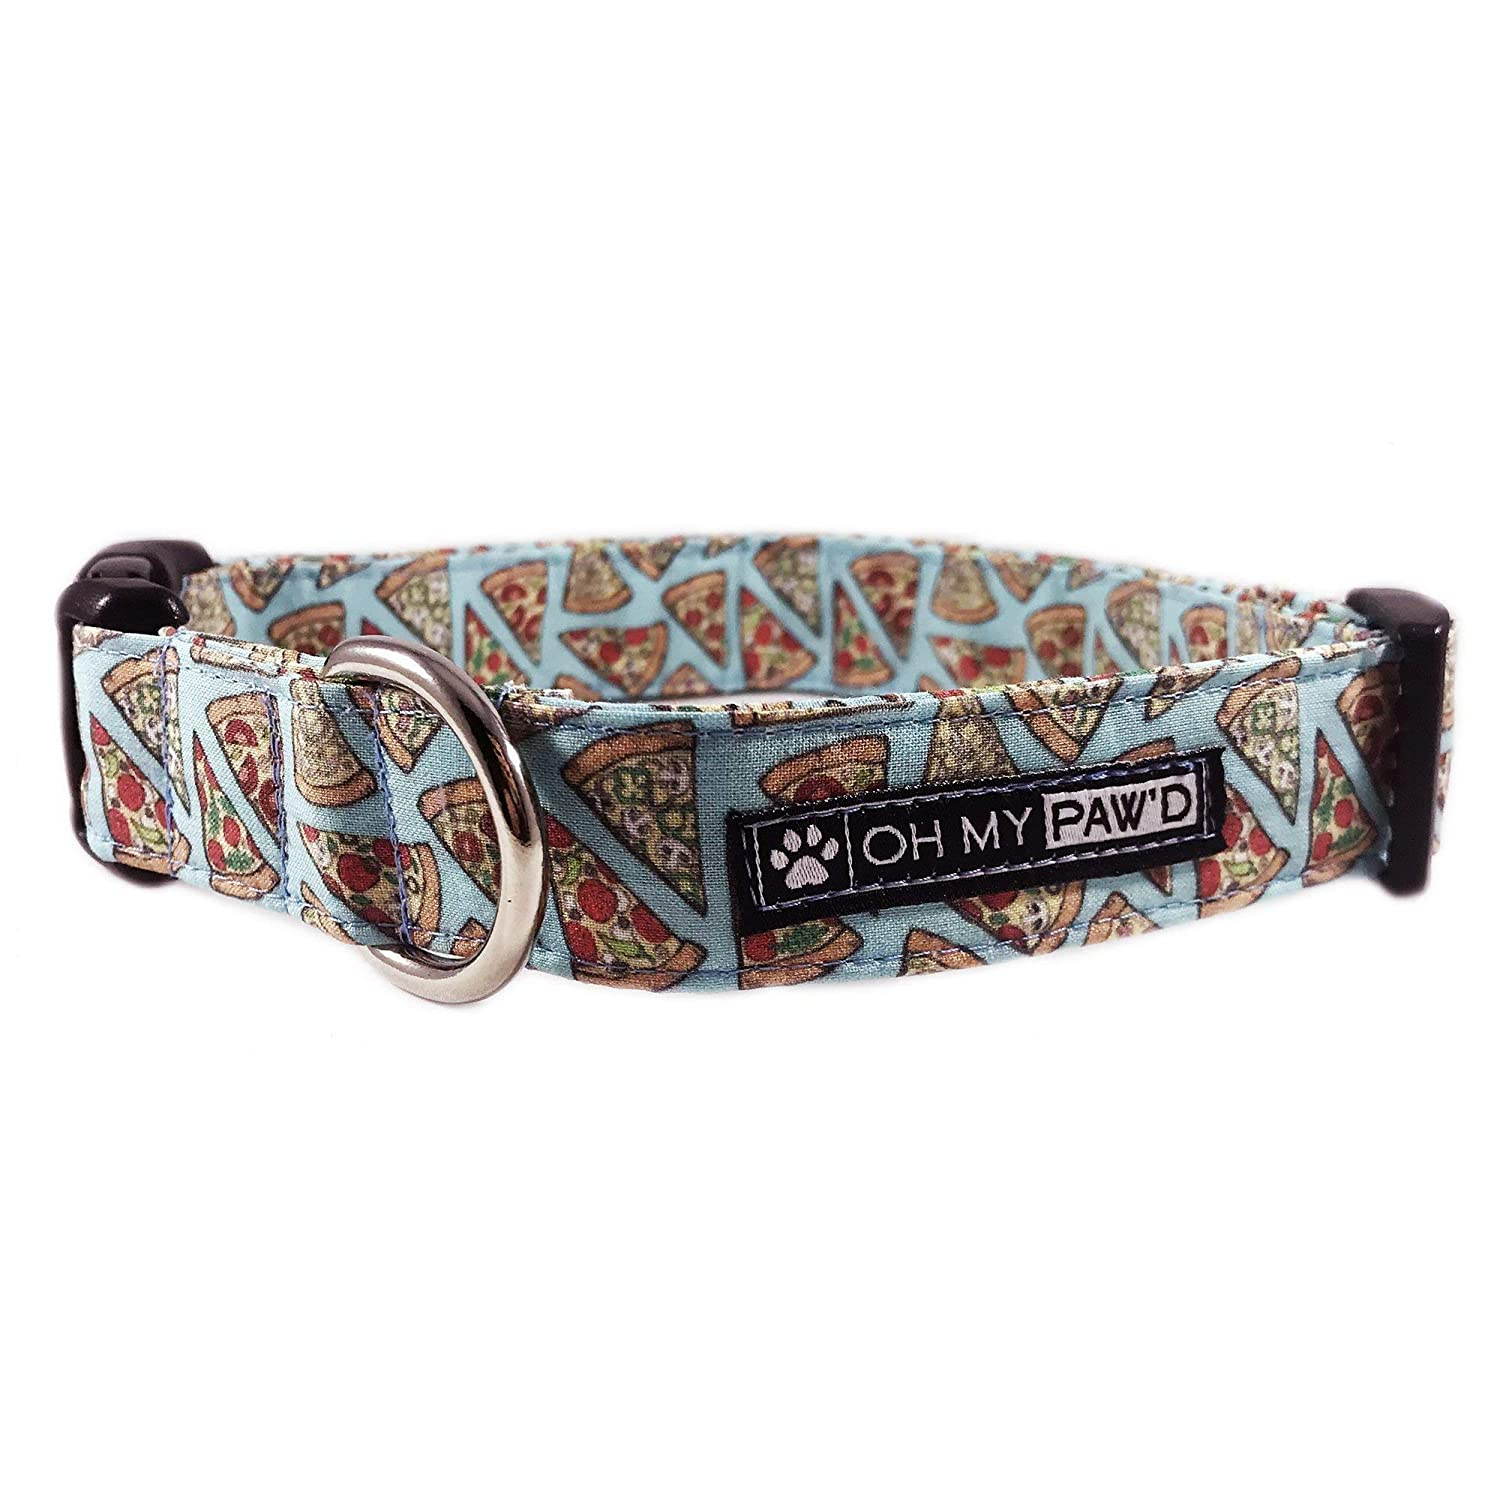 Pepperoni Pizza Dog or Cat Collar for Pets Size Extra Small with Extra Length 5/8 Wide and 10-17 Long by Oh My Paw'd